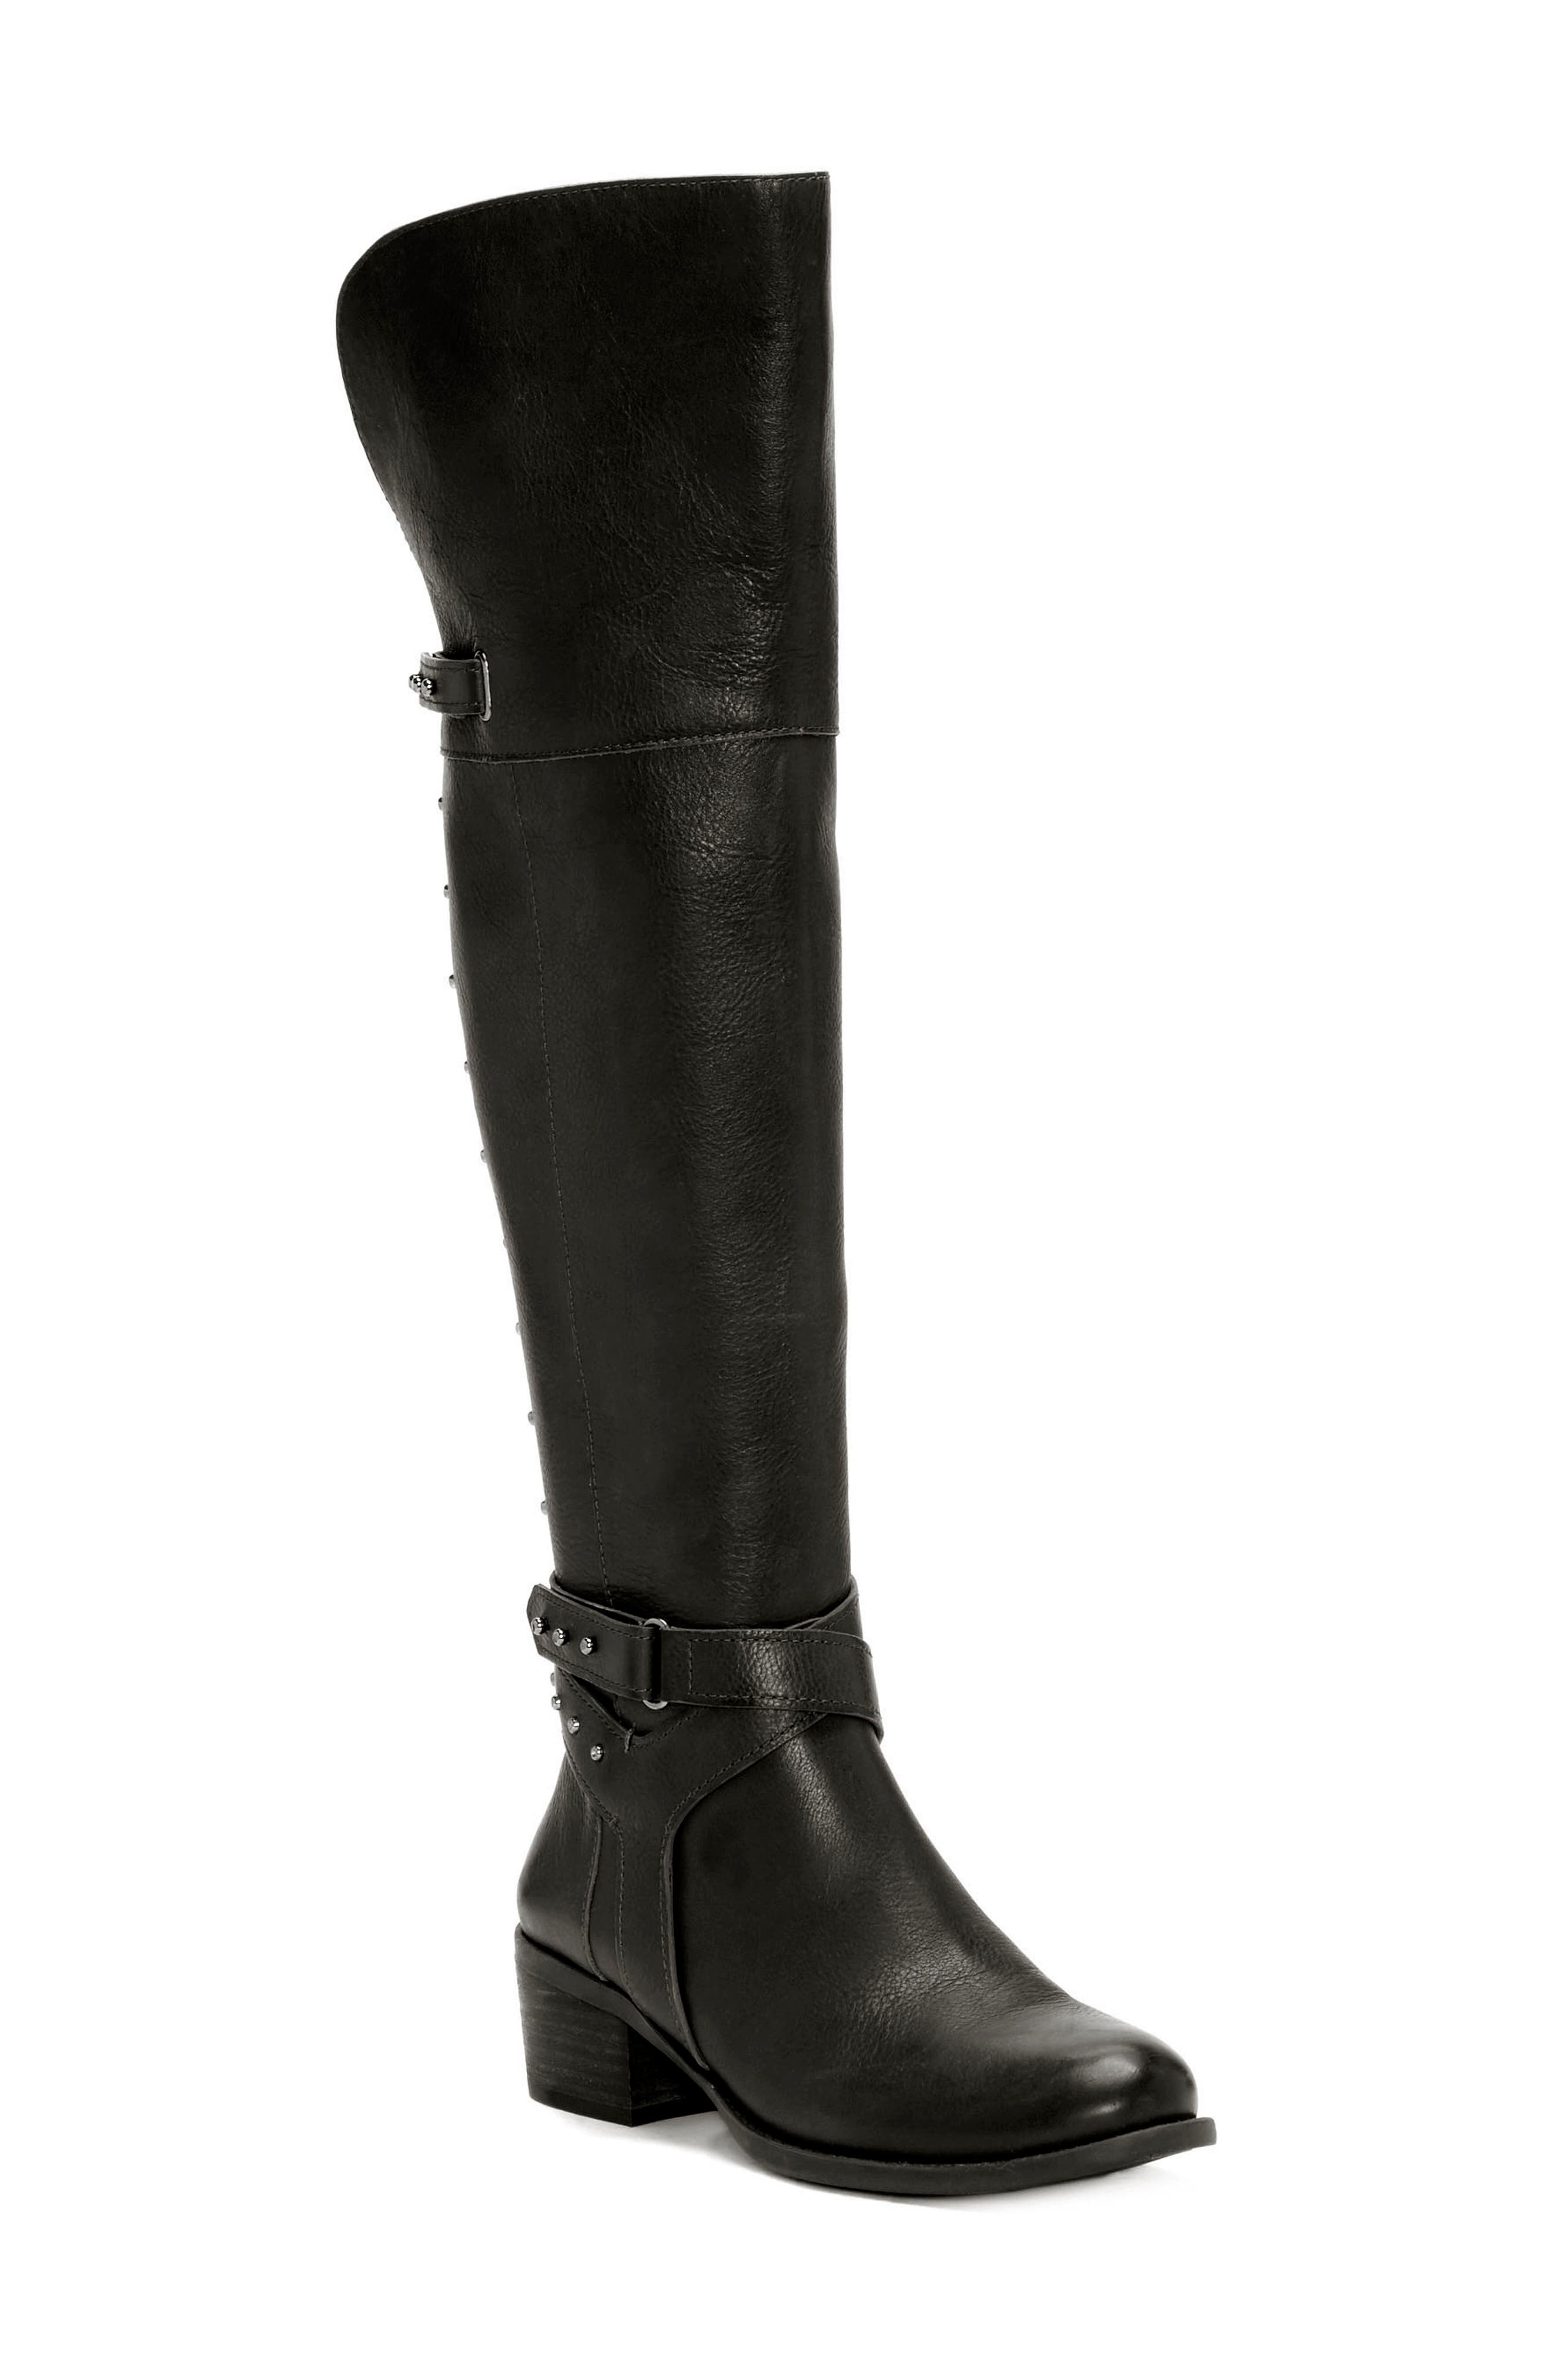 Vince Camuto Bestant Over The Knee Boot, Black